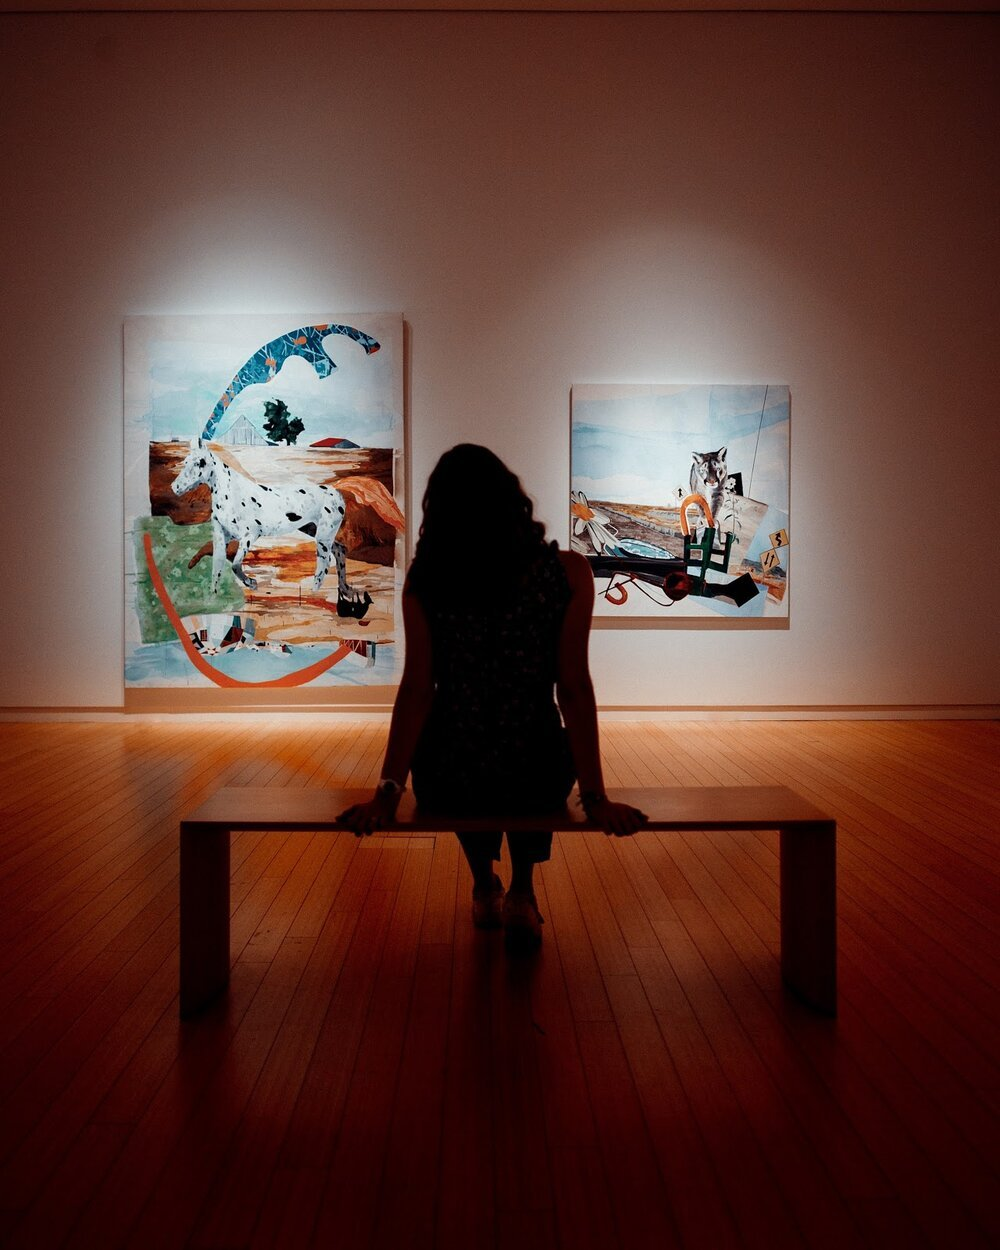 Galleries and museums can inspire your own creations and give you time to reflect as you move from room to room.